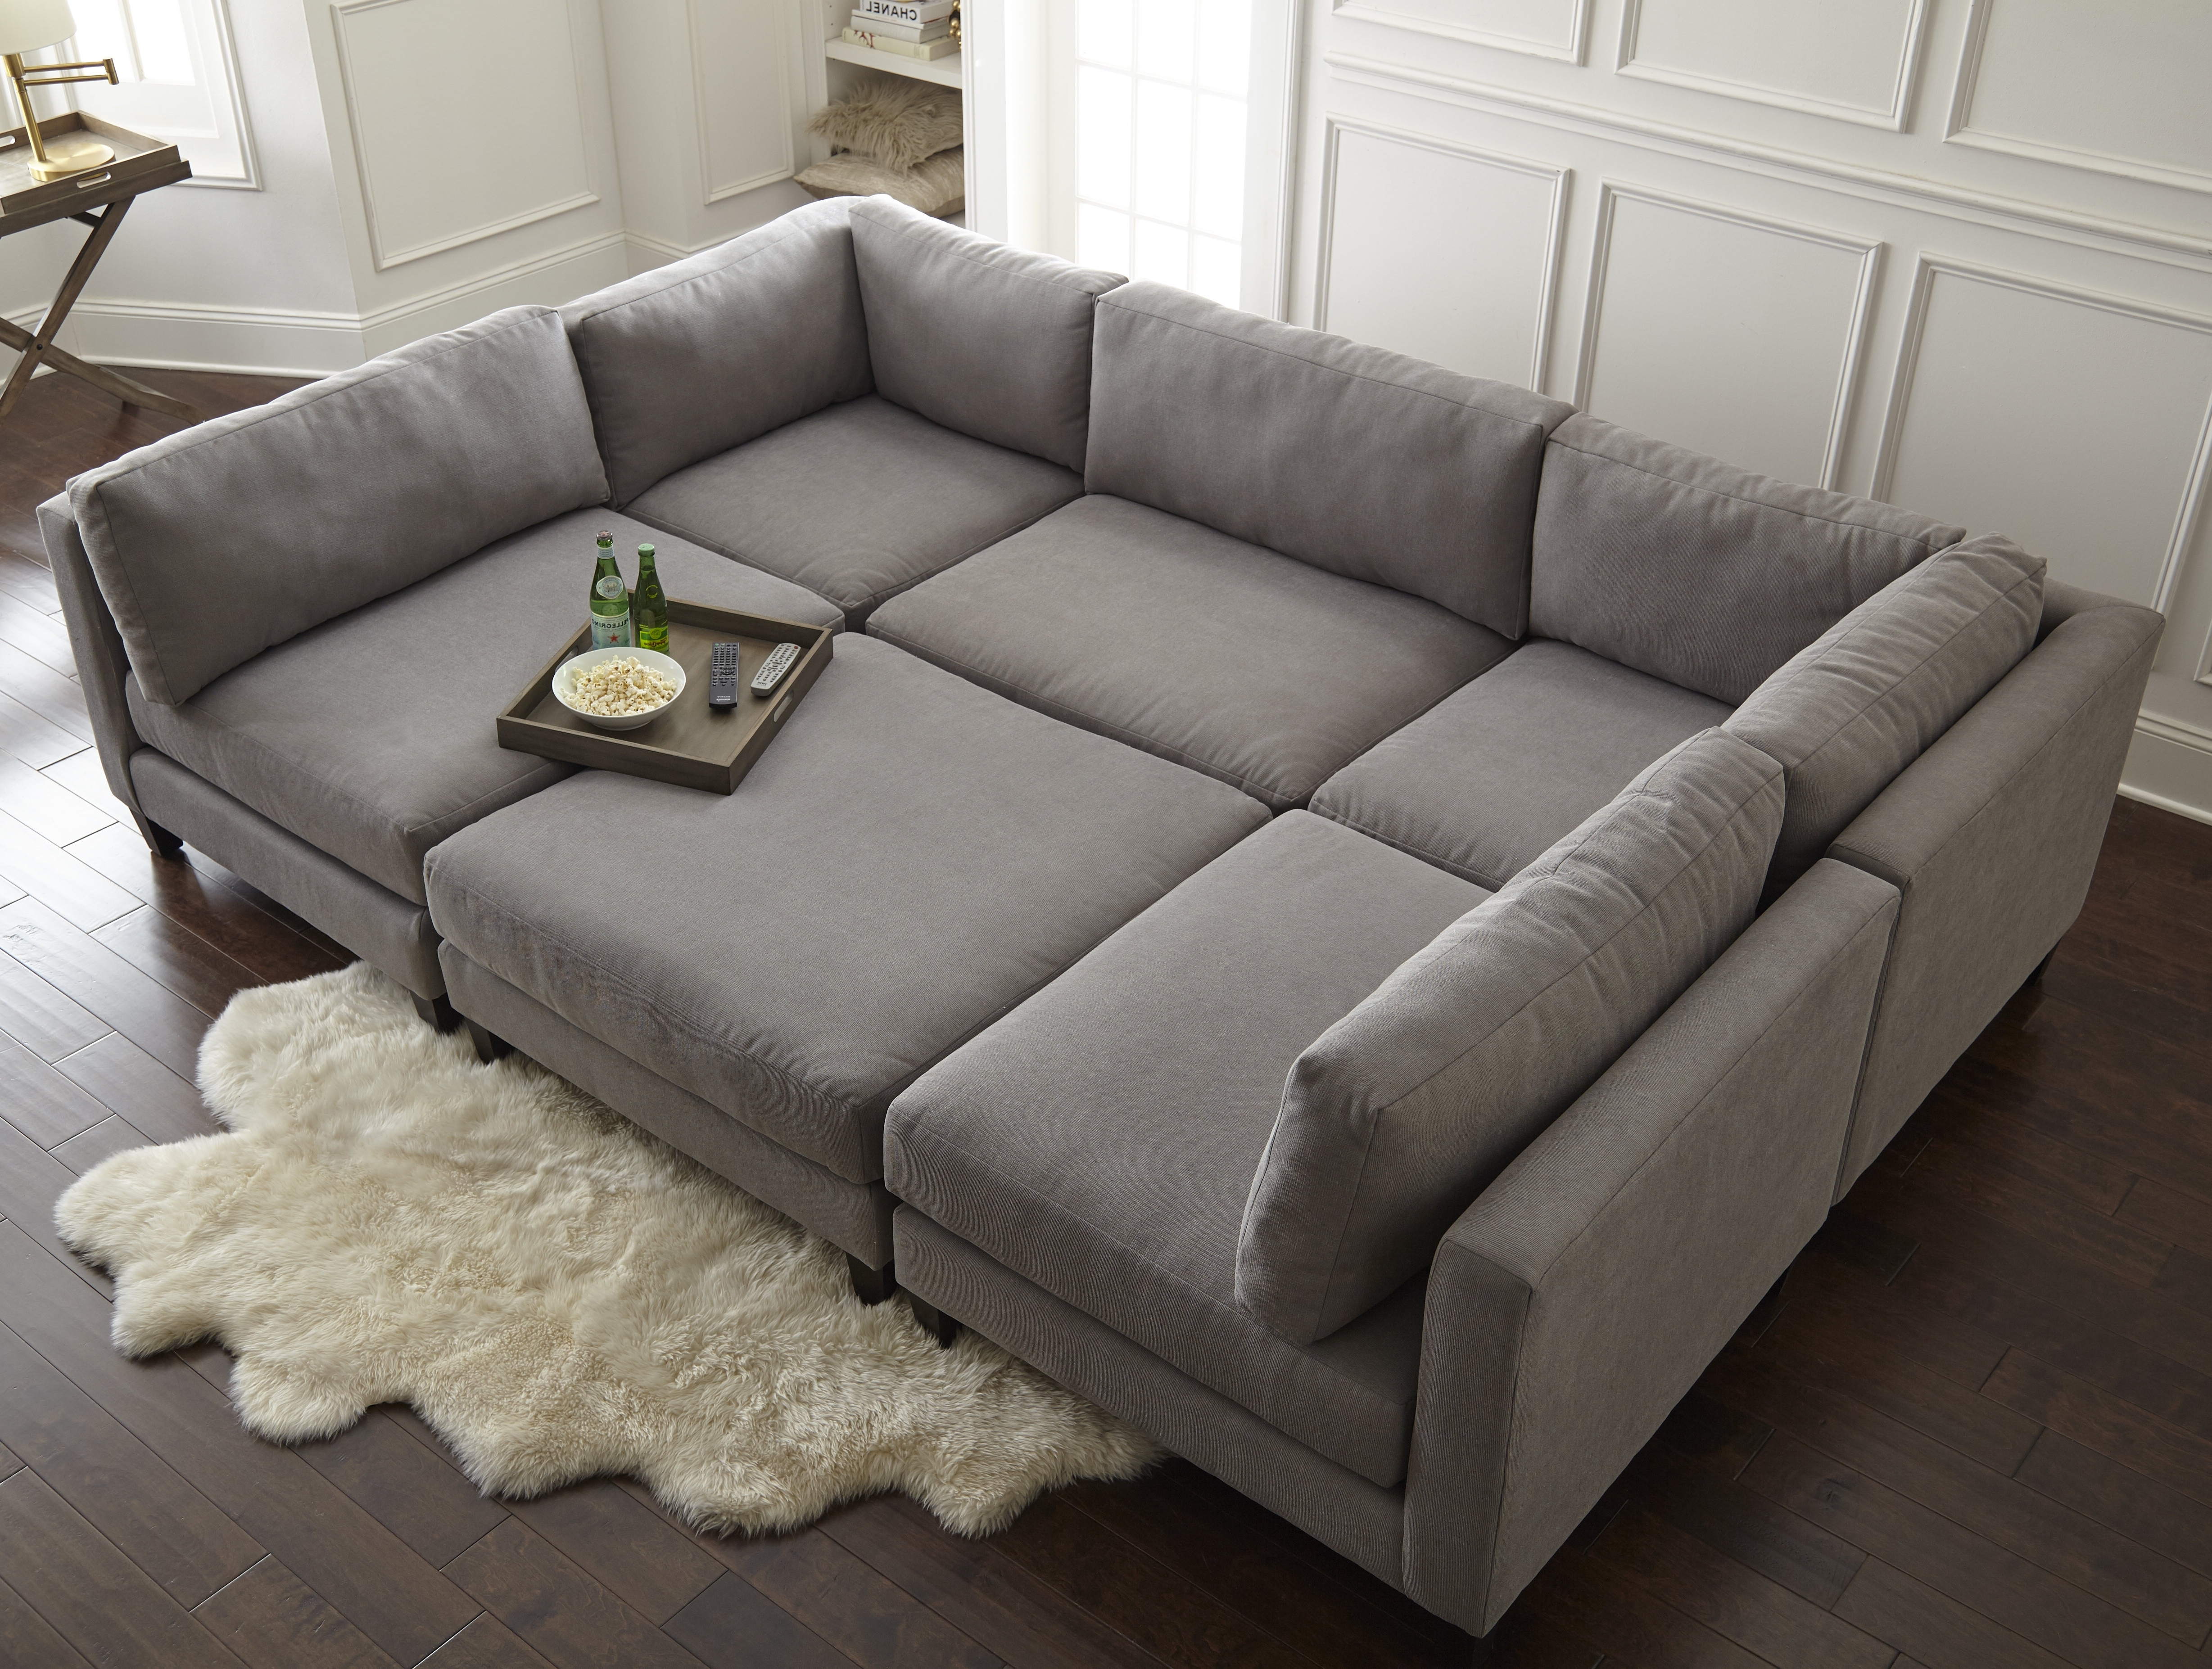 Down Filled Sectional Sofas Intended For 2019 Individual Sectional Pieces (View 20 of 20)